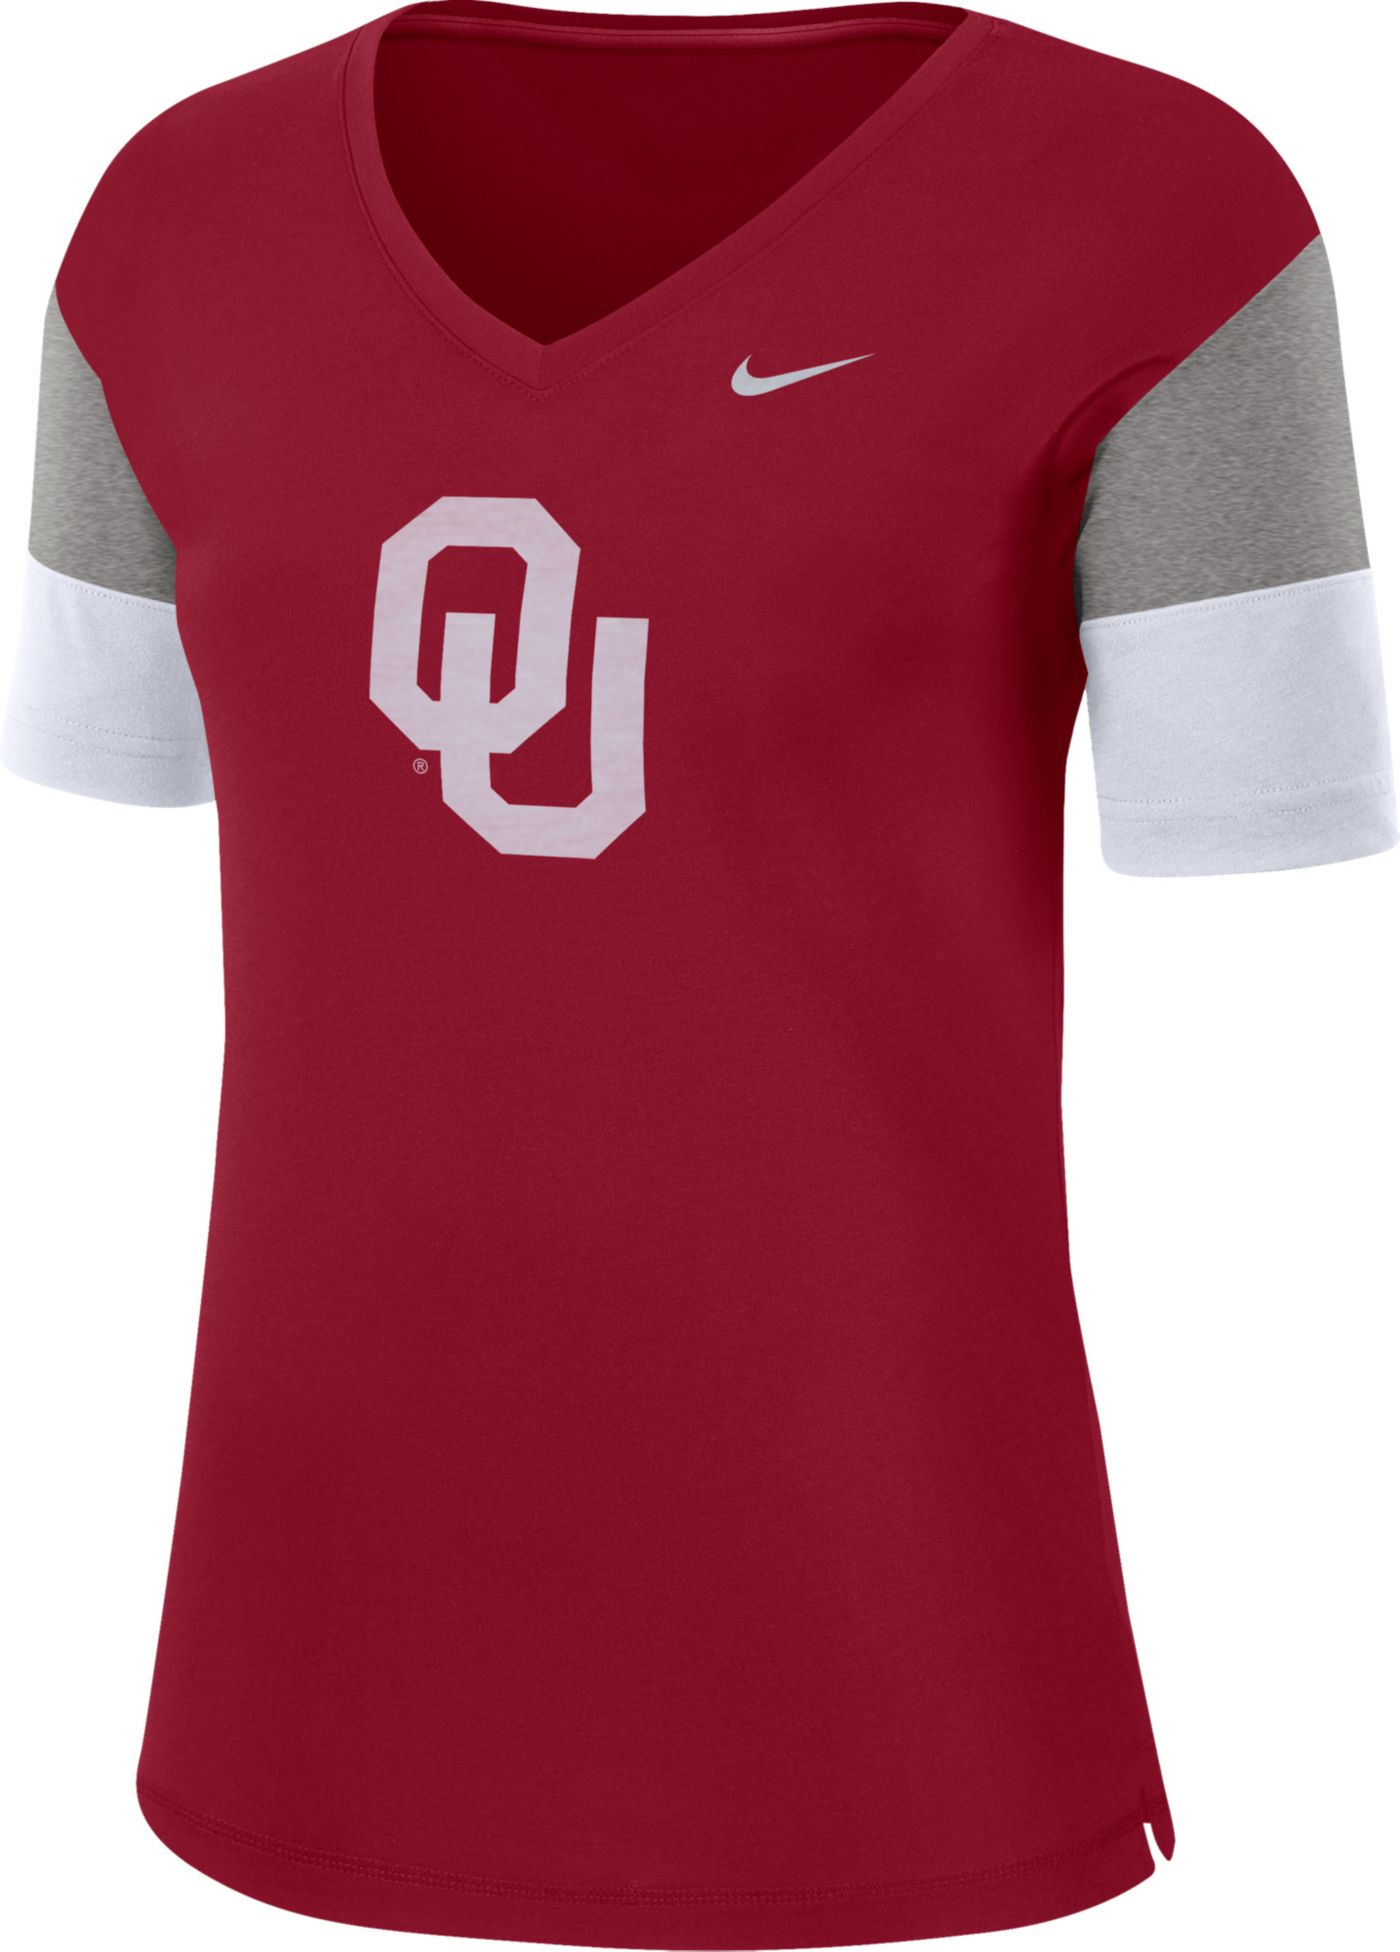 Nike Women's Oklahoma Sooners Crimson Breathe V-Neck T-Shirt